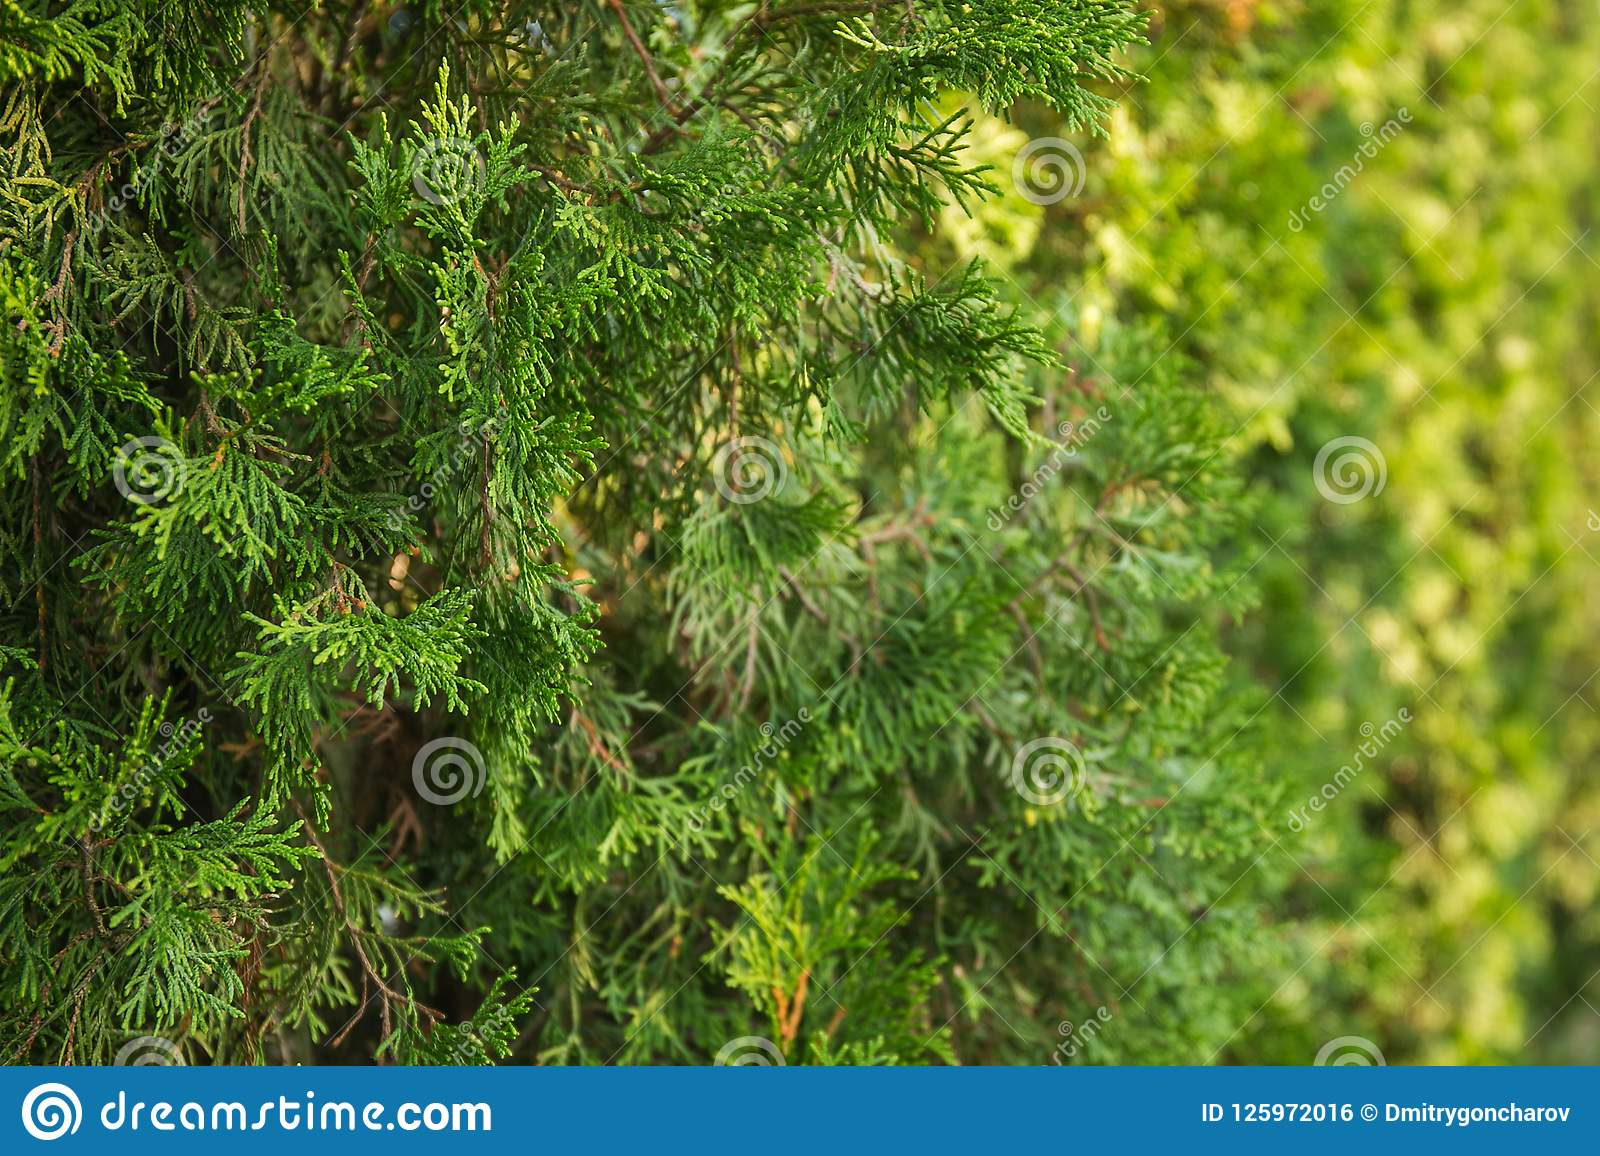 beautiful green christmas leaves of thuja trees thuja twig thuja occidentalis is an evergreen coniferous tree platycladus orientalis also known as - An Evergreen Christmas